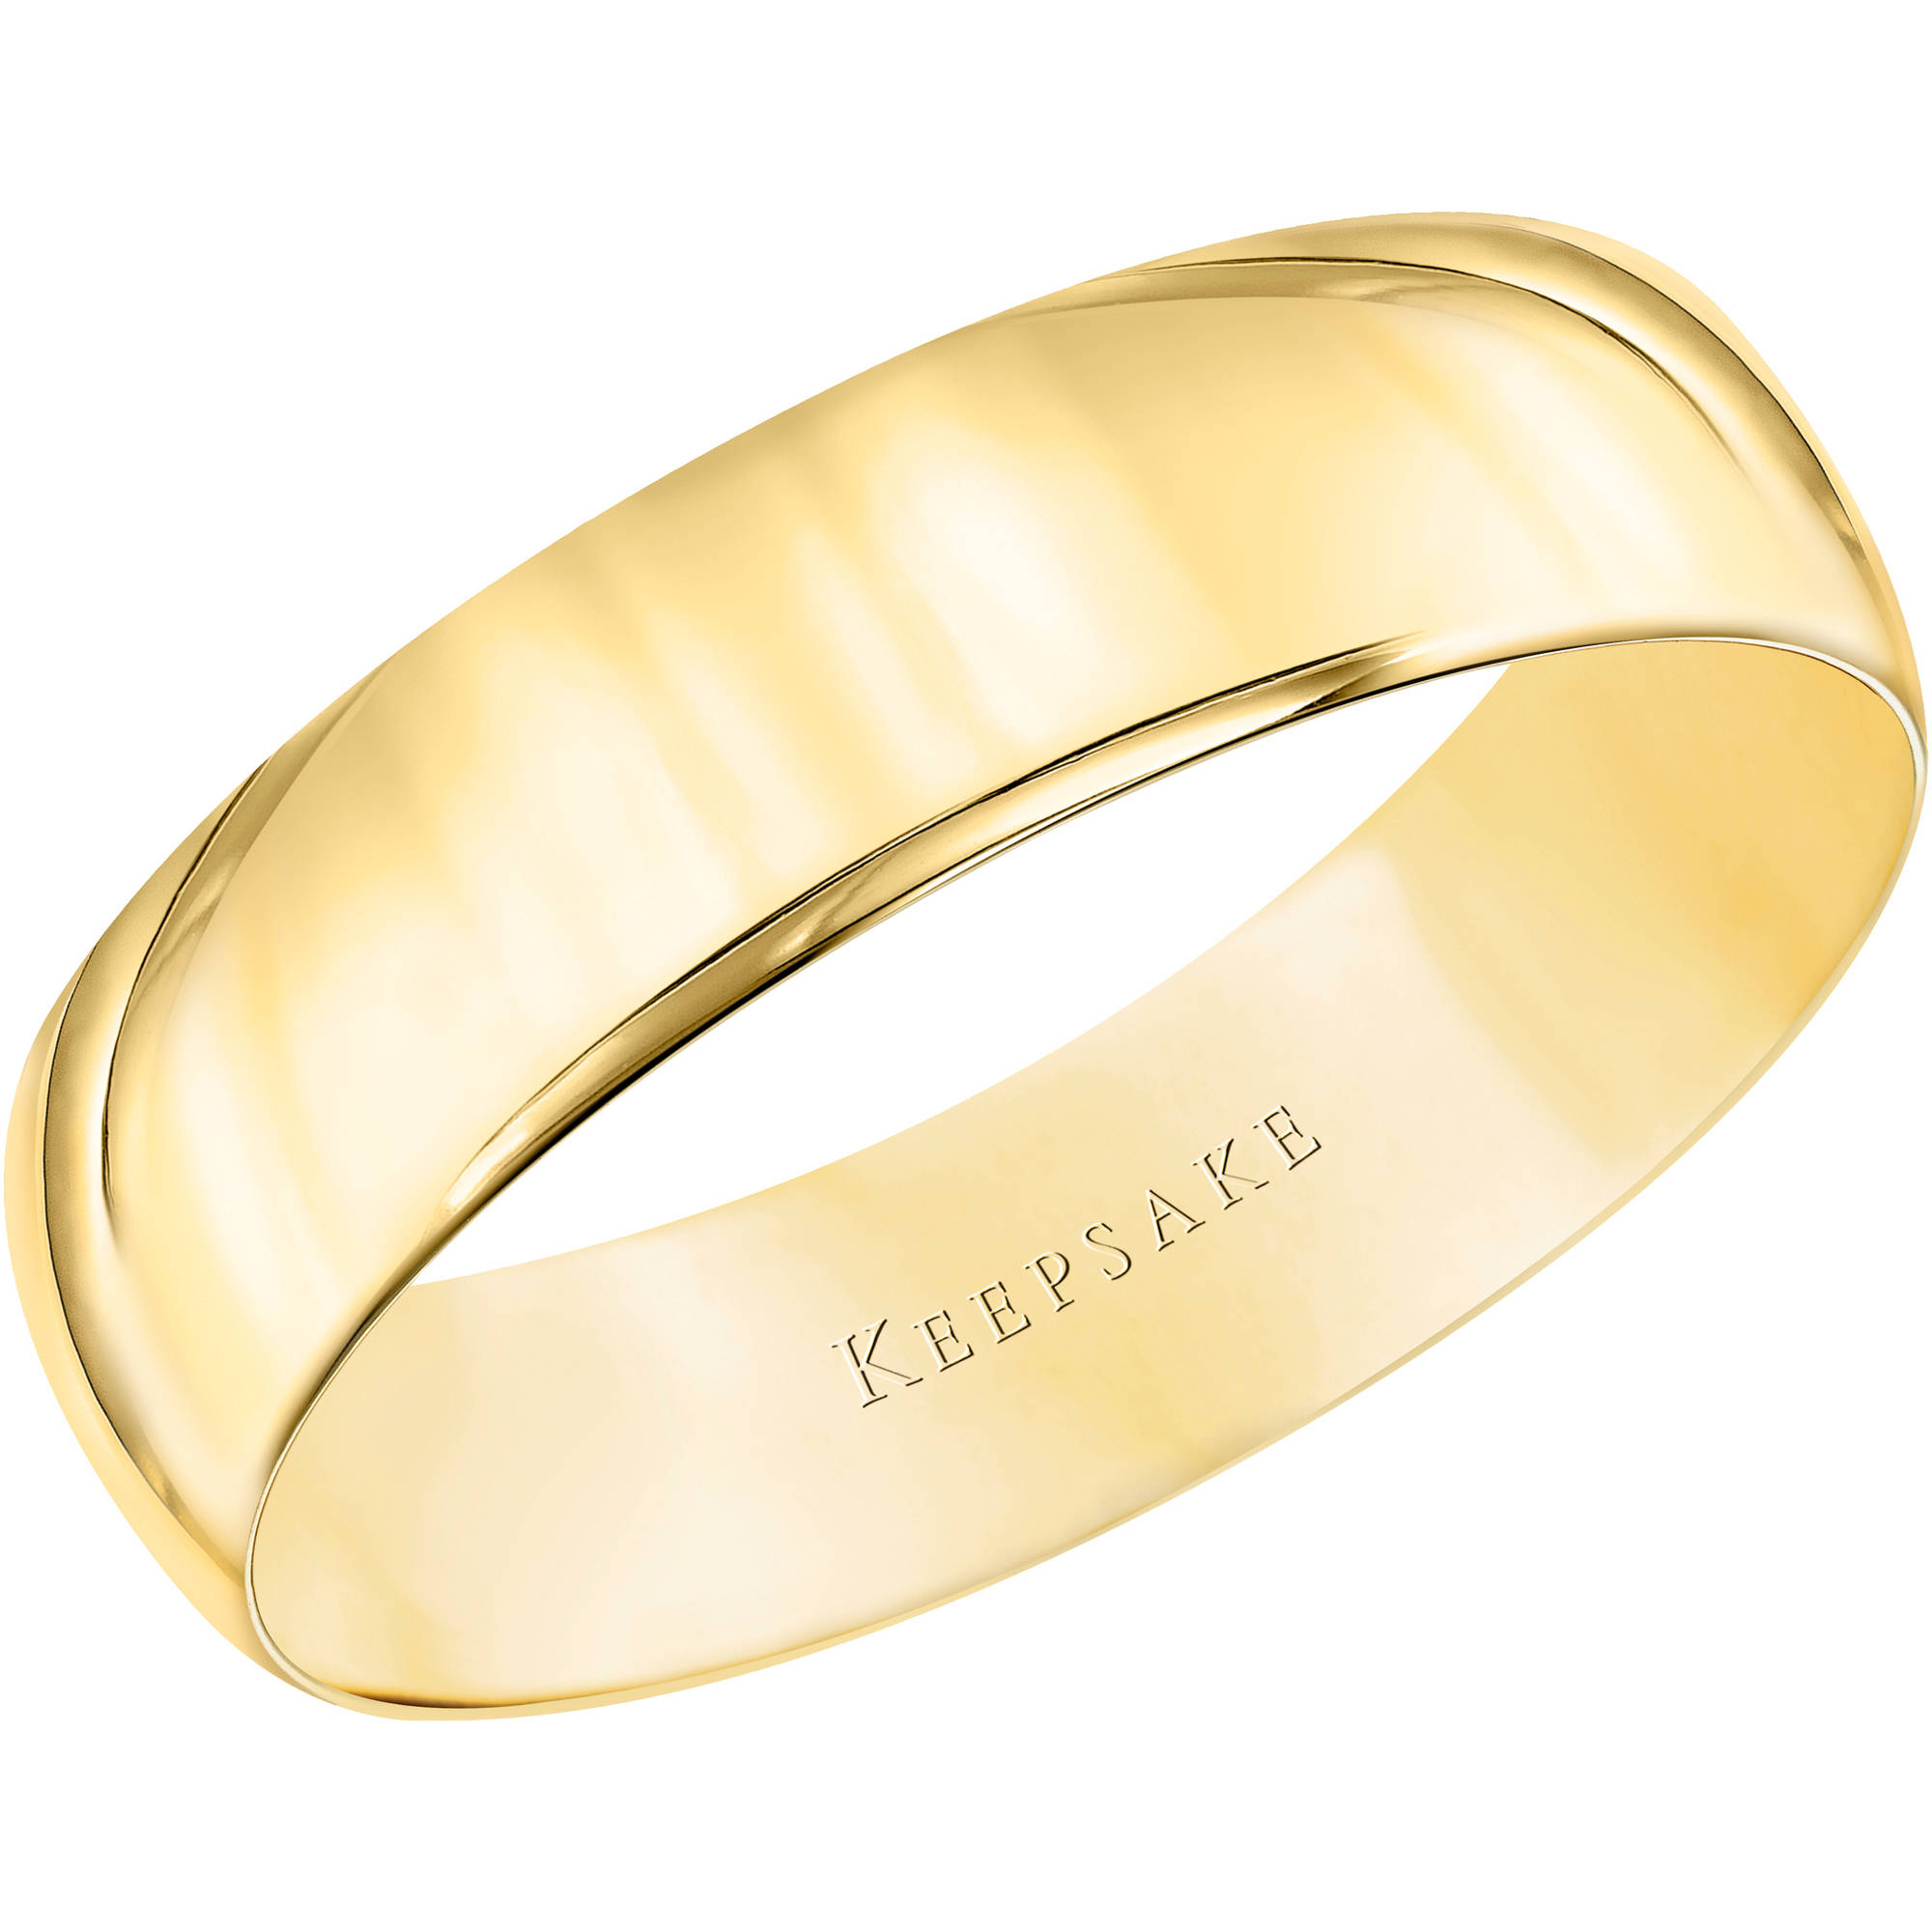 Keepsake 10kt Yellow Gold Wedding Band With High Polish Finish